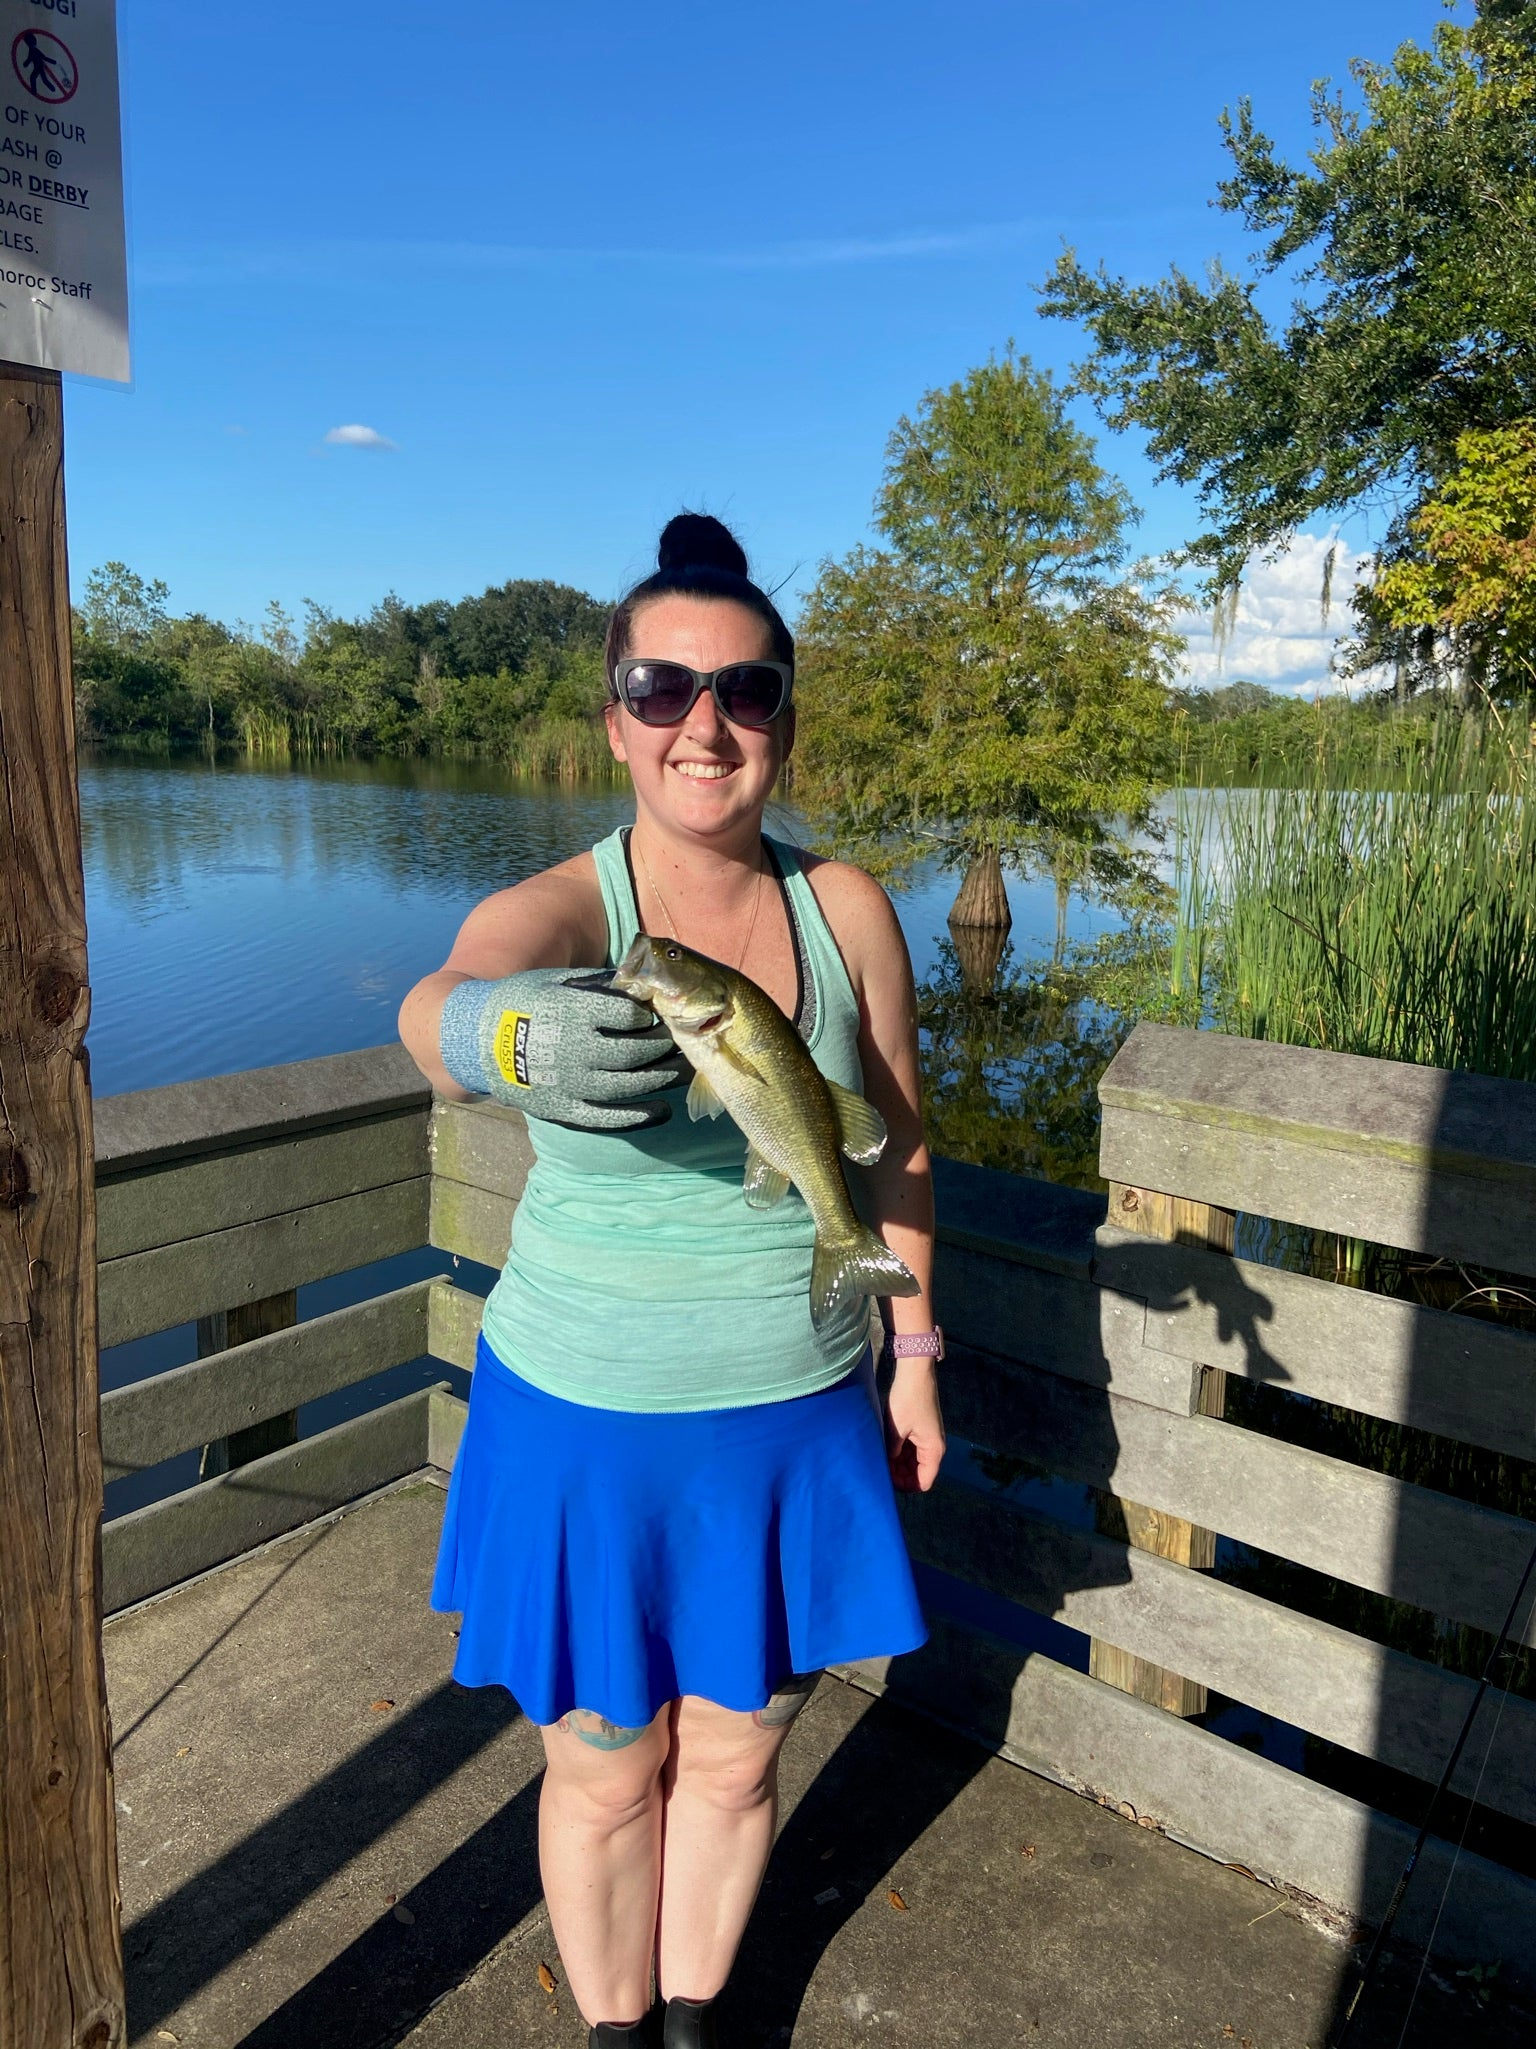 Becky on a dock holding a fish while wearing a Bolder skirt